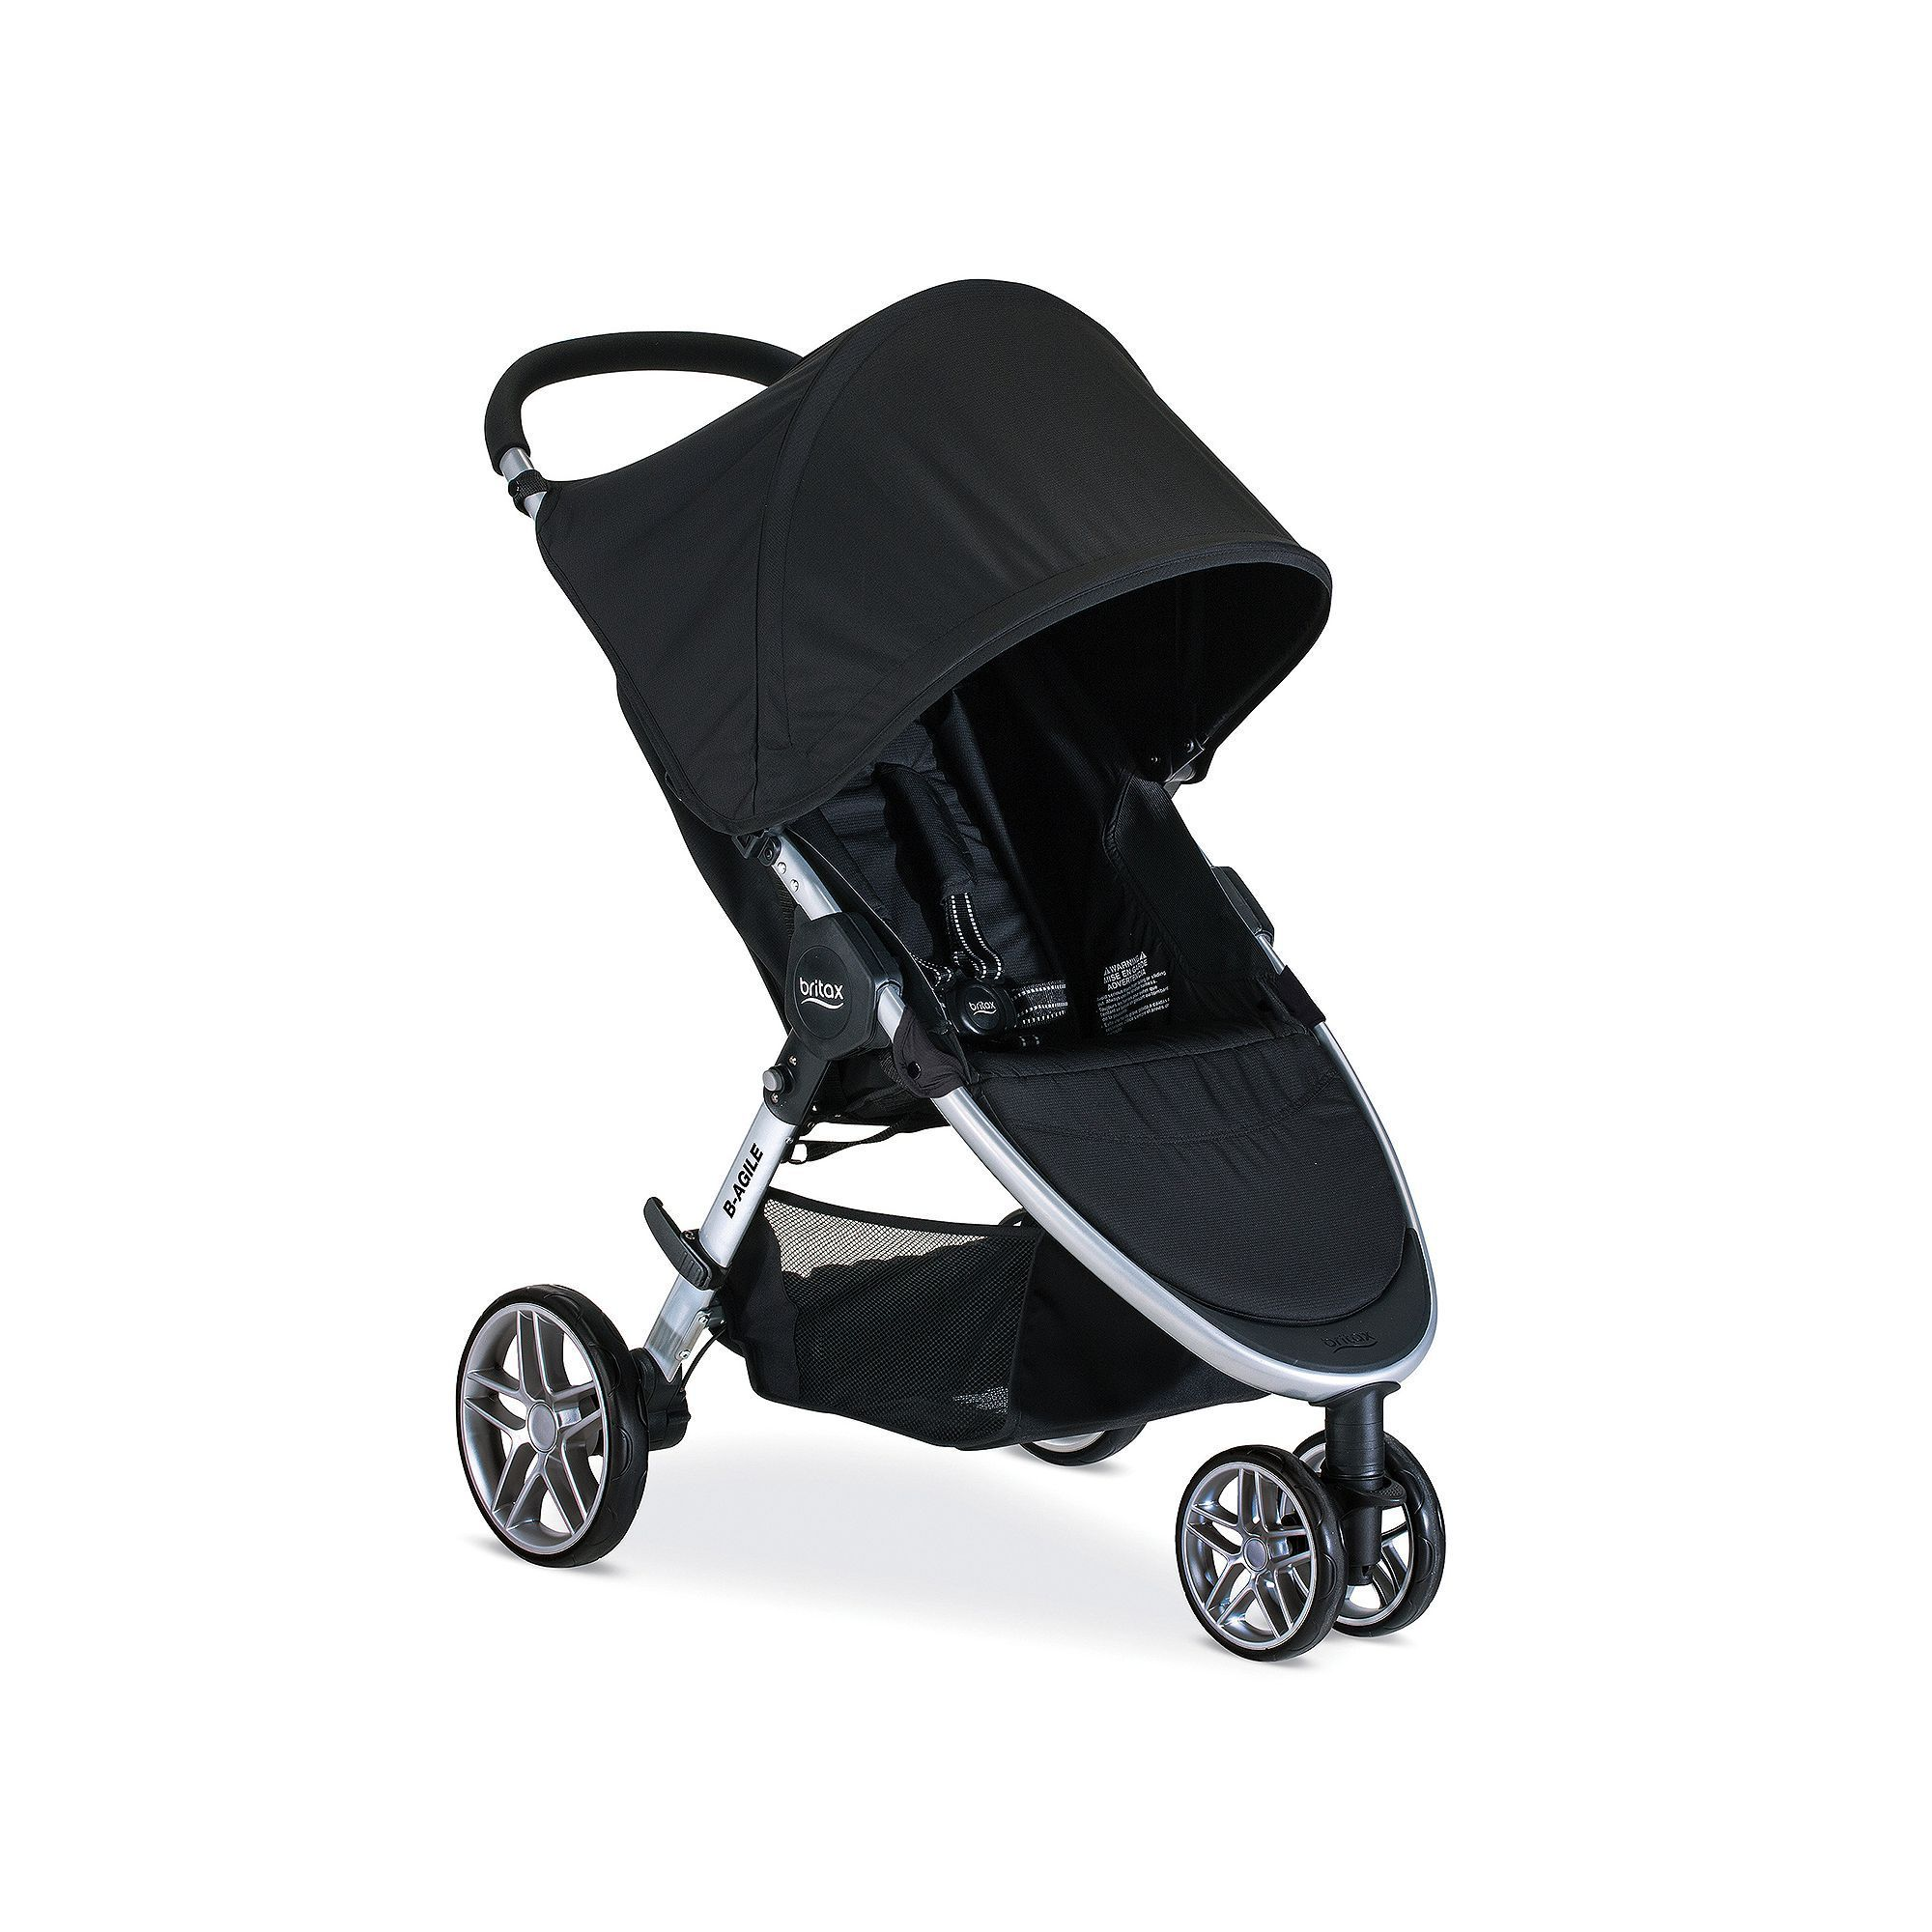 Enjoy versatile lightweight travel functionality with the BRITAX B Agile 3 Stroller Designed with multi tasking parents in mind this convenient